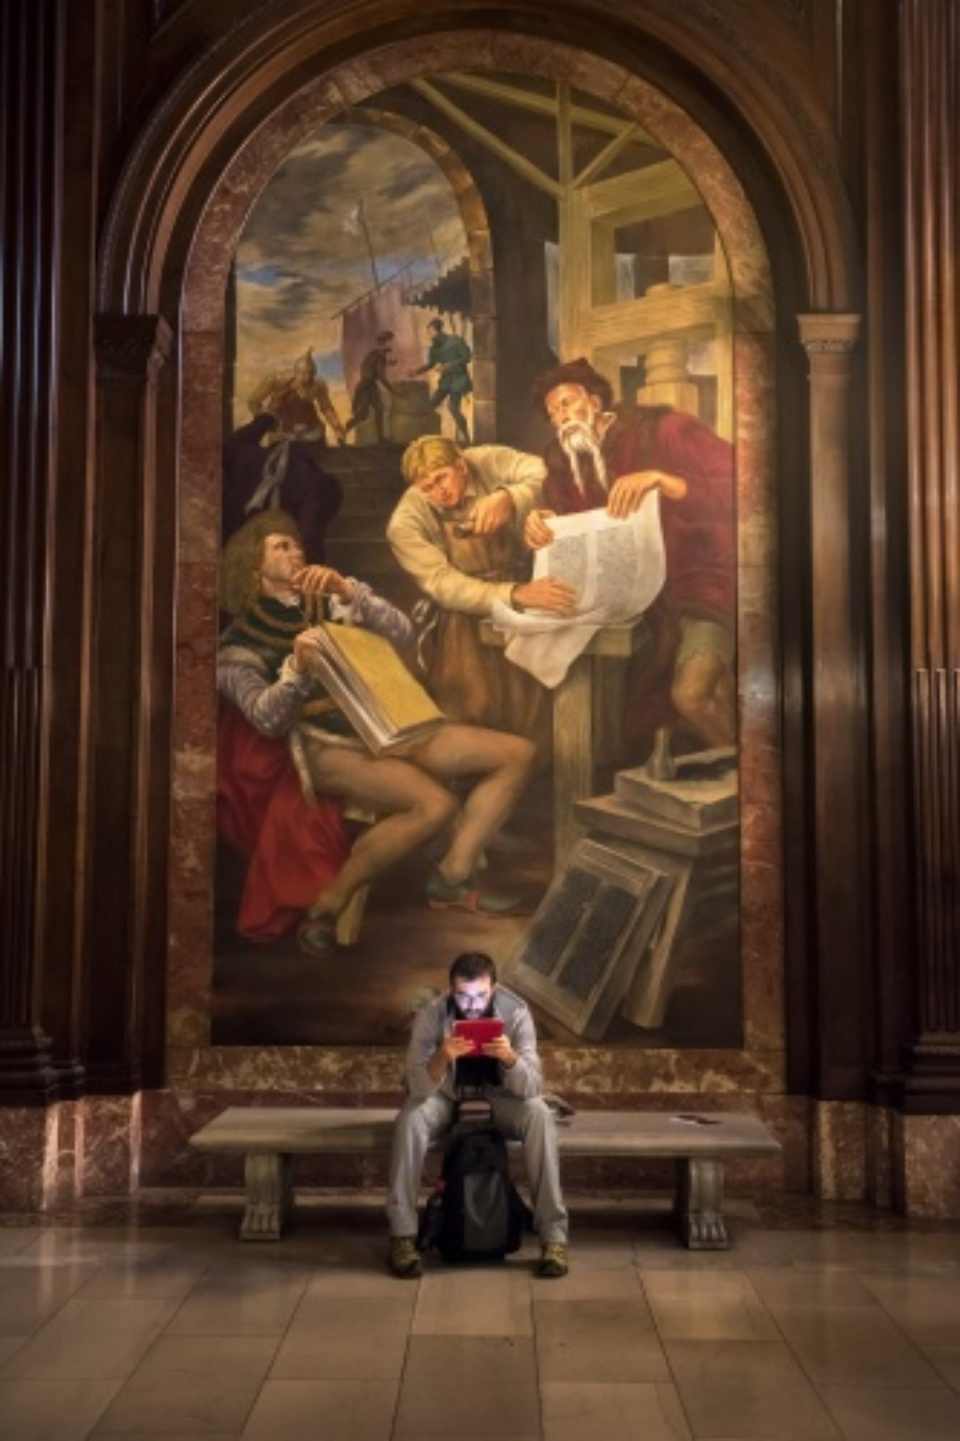 Steve McCurry: New York City Library New York, 2015